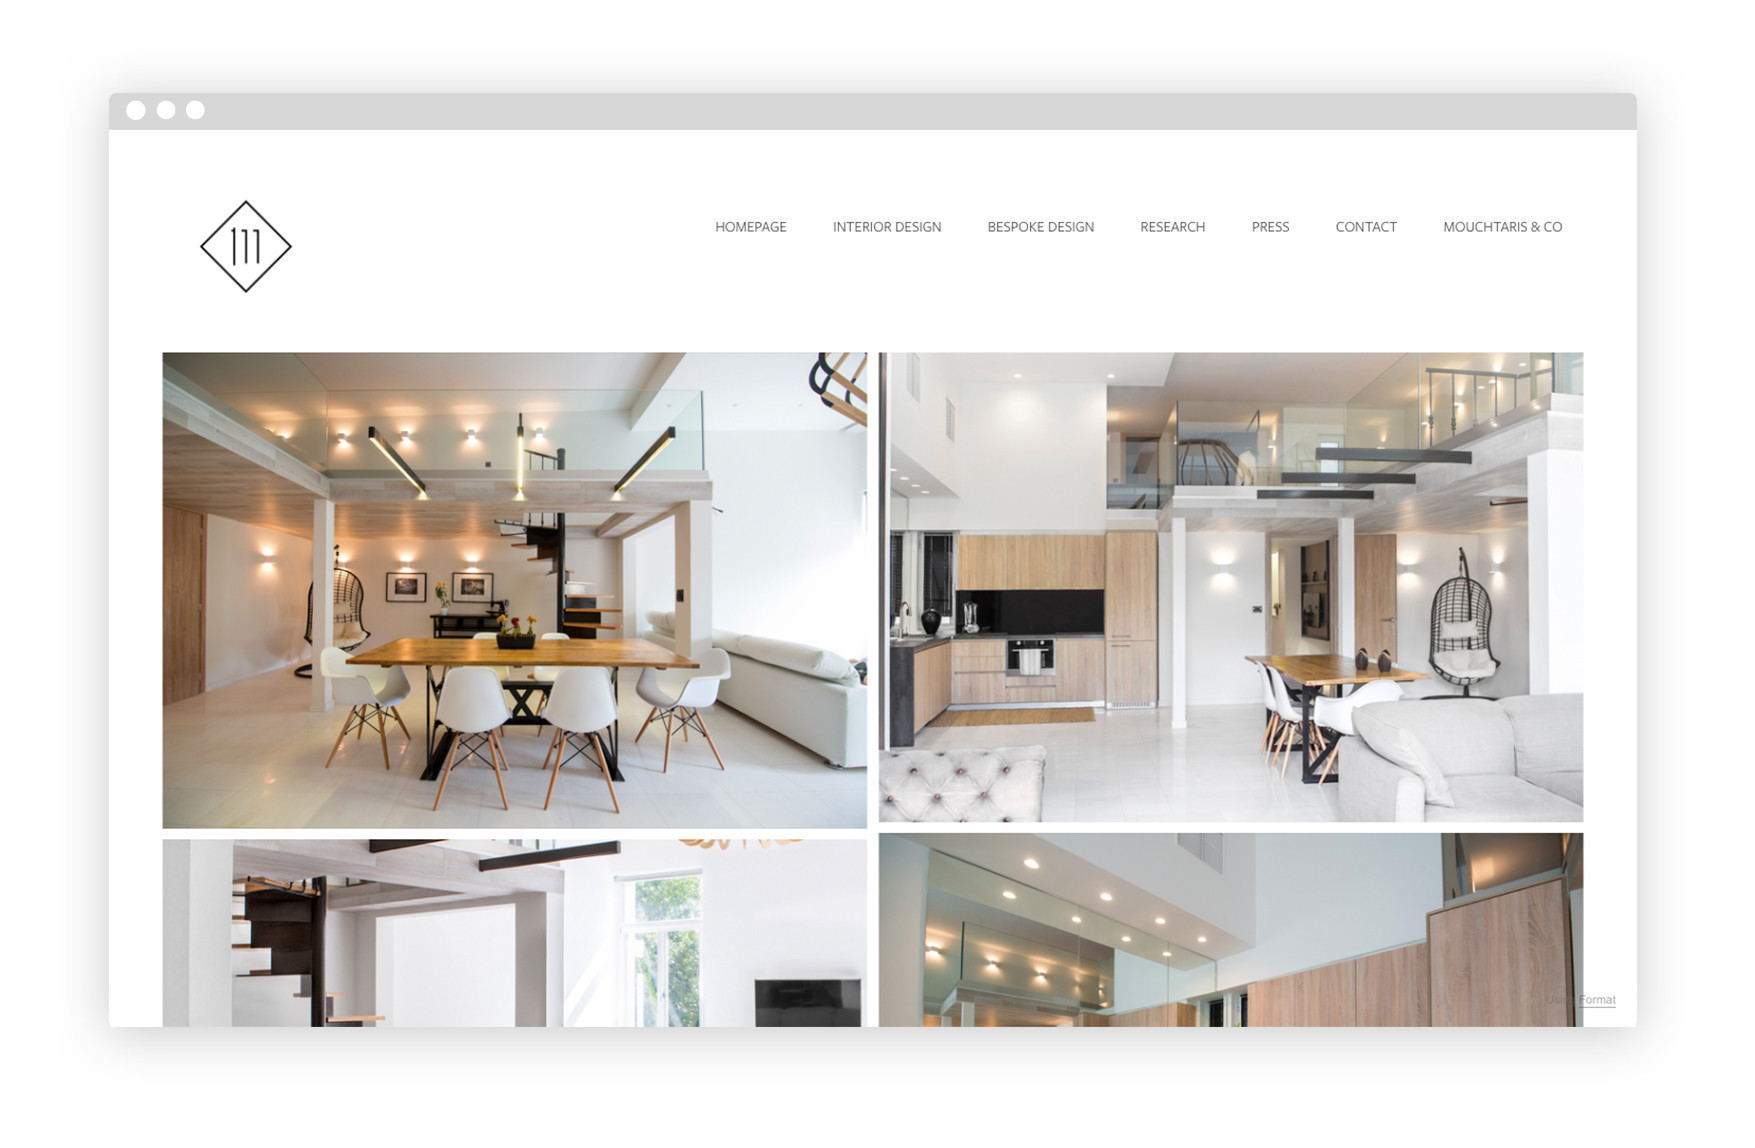 12 interior design portfolio website examples we love